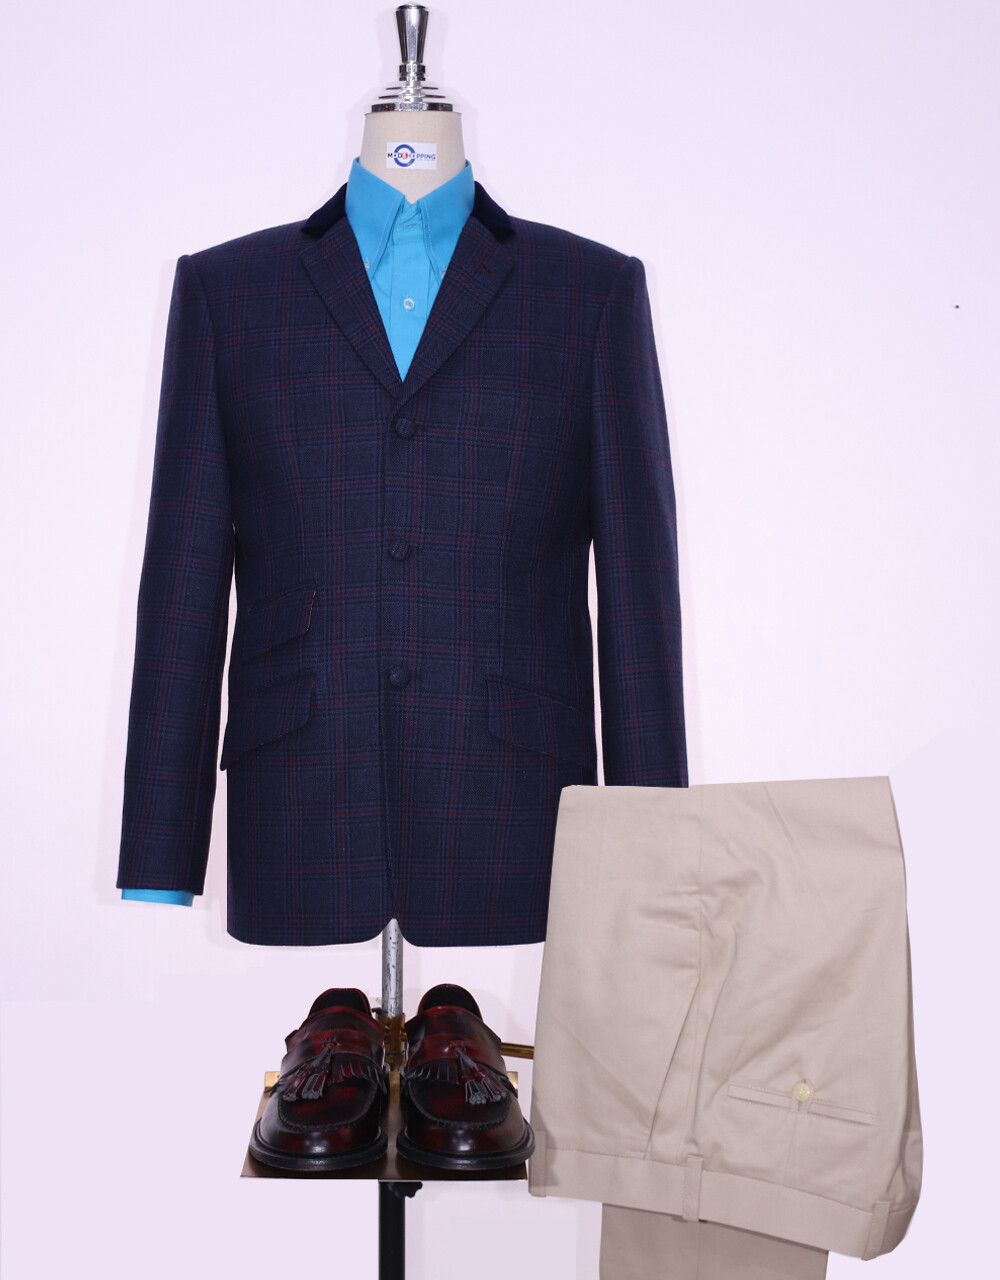 Tweed Jacket | Navy Blue Prince Of Wales Check 60s Style Jacket.